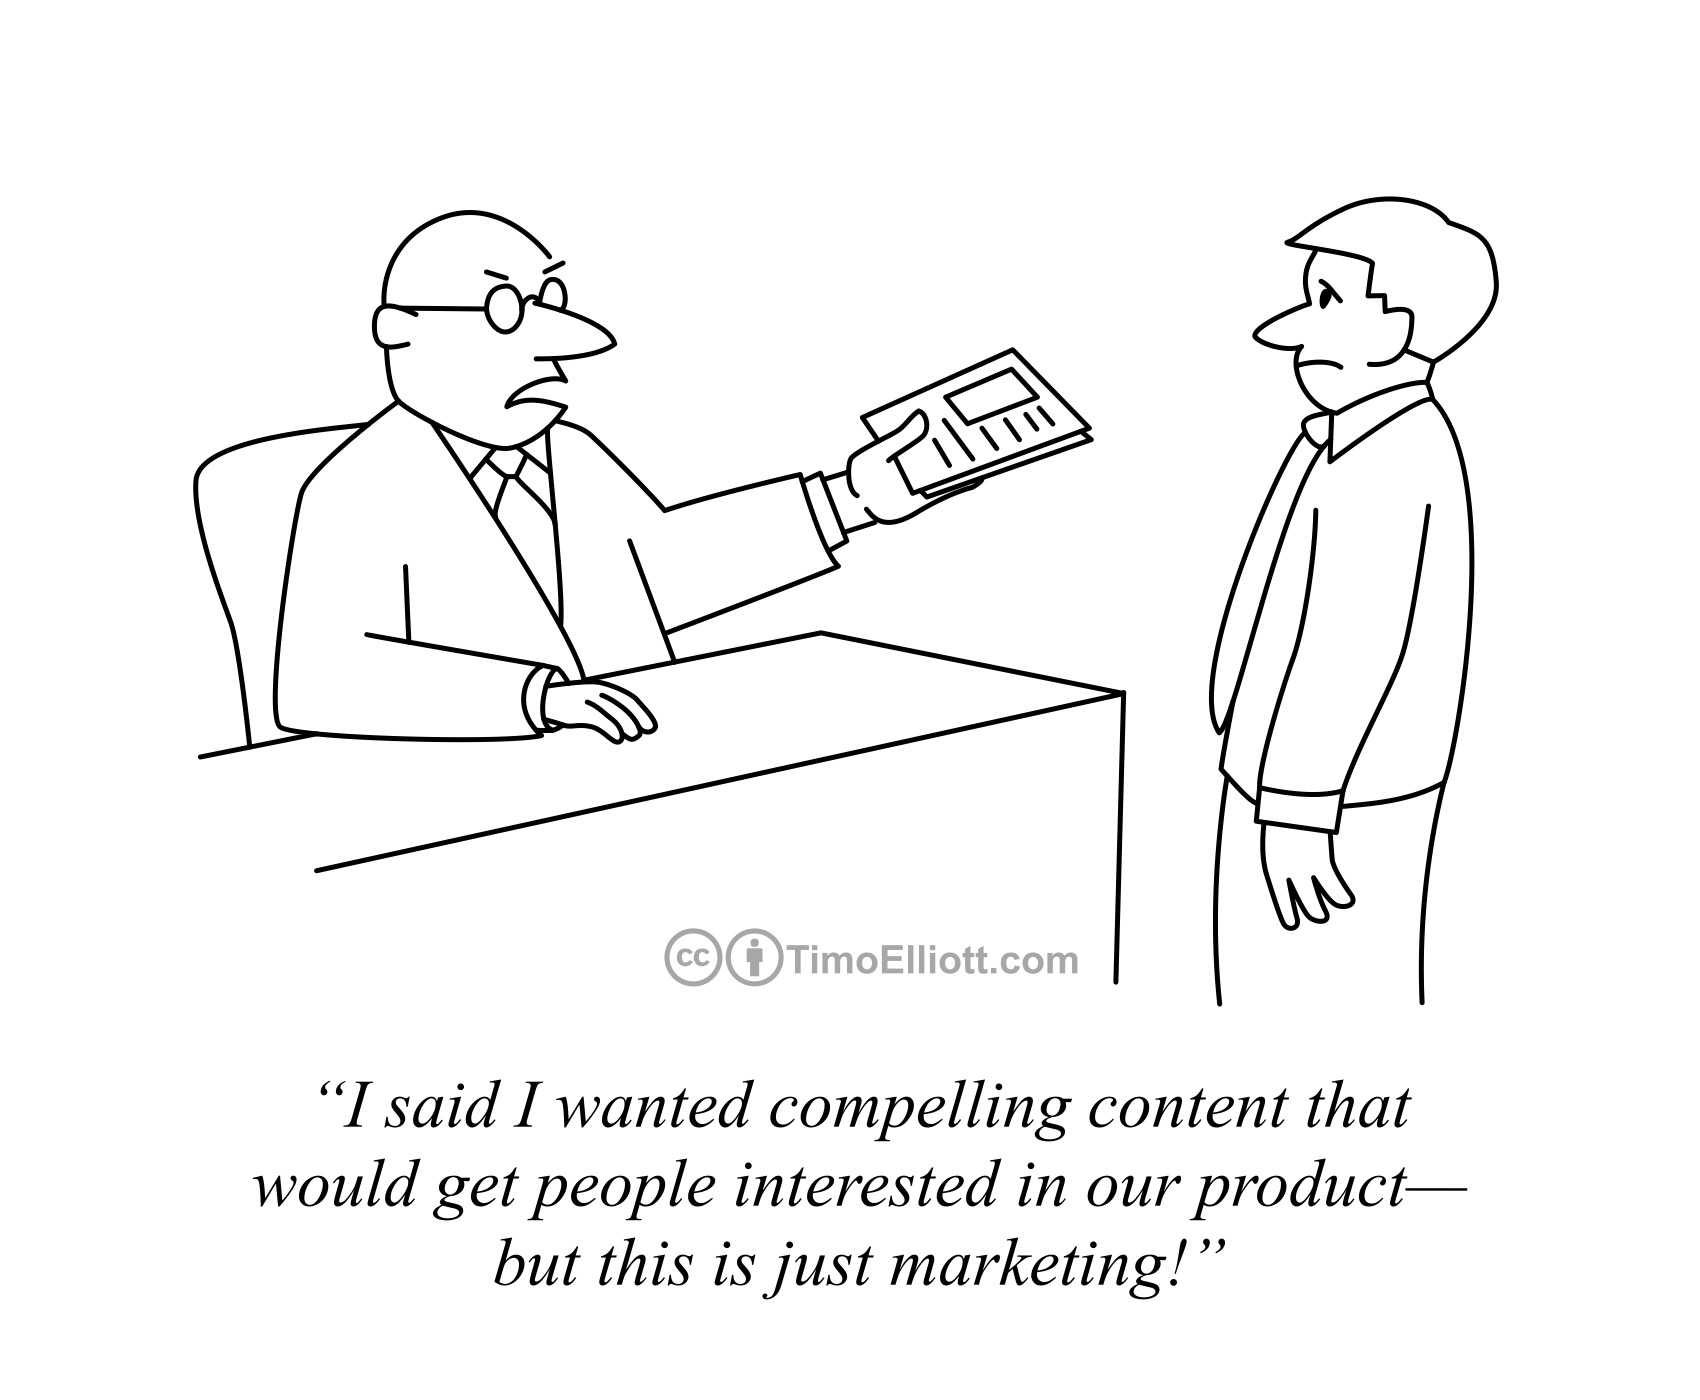 I want good content -- not just marketing!